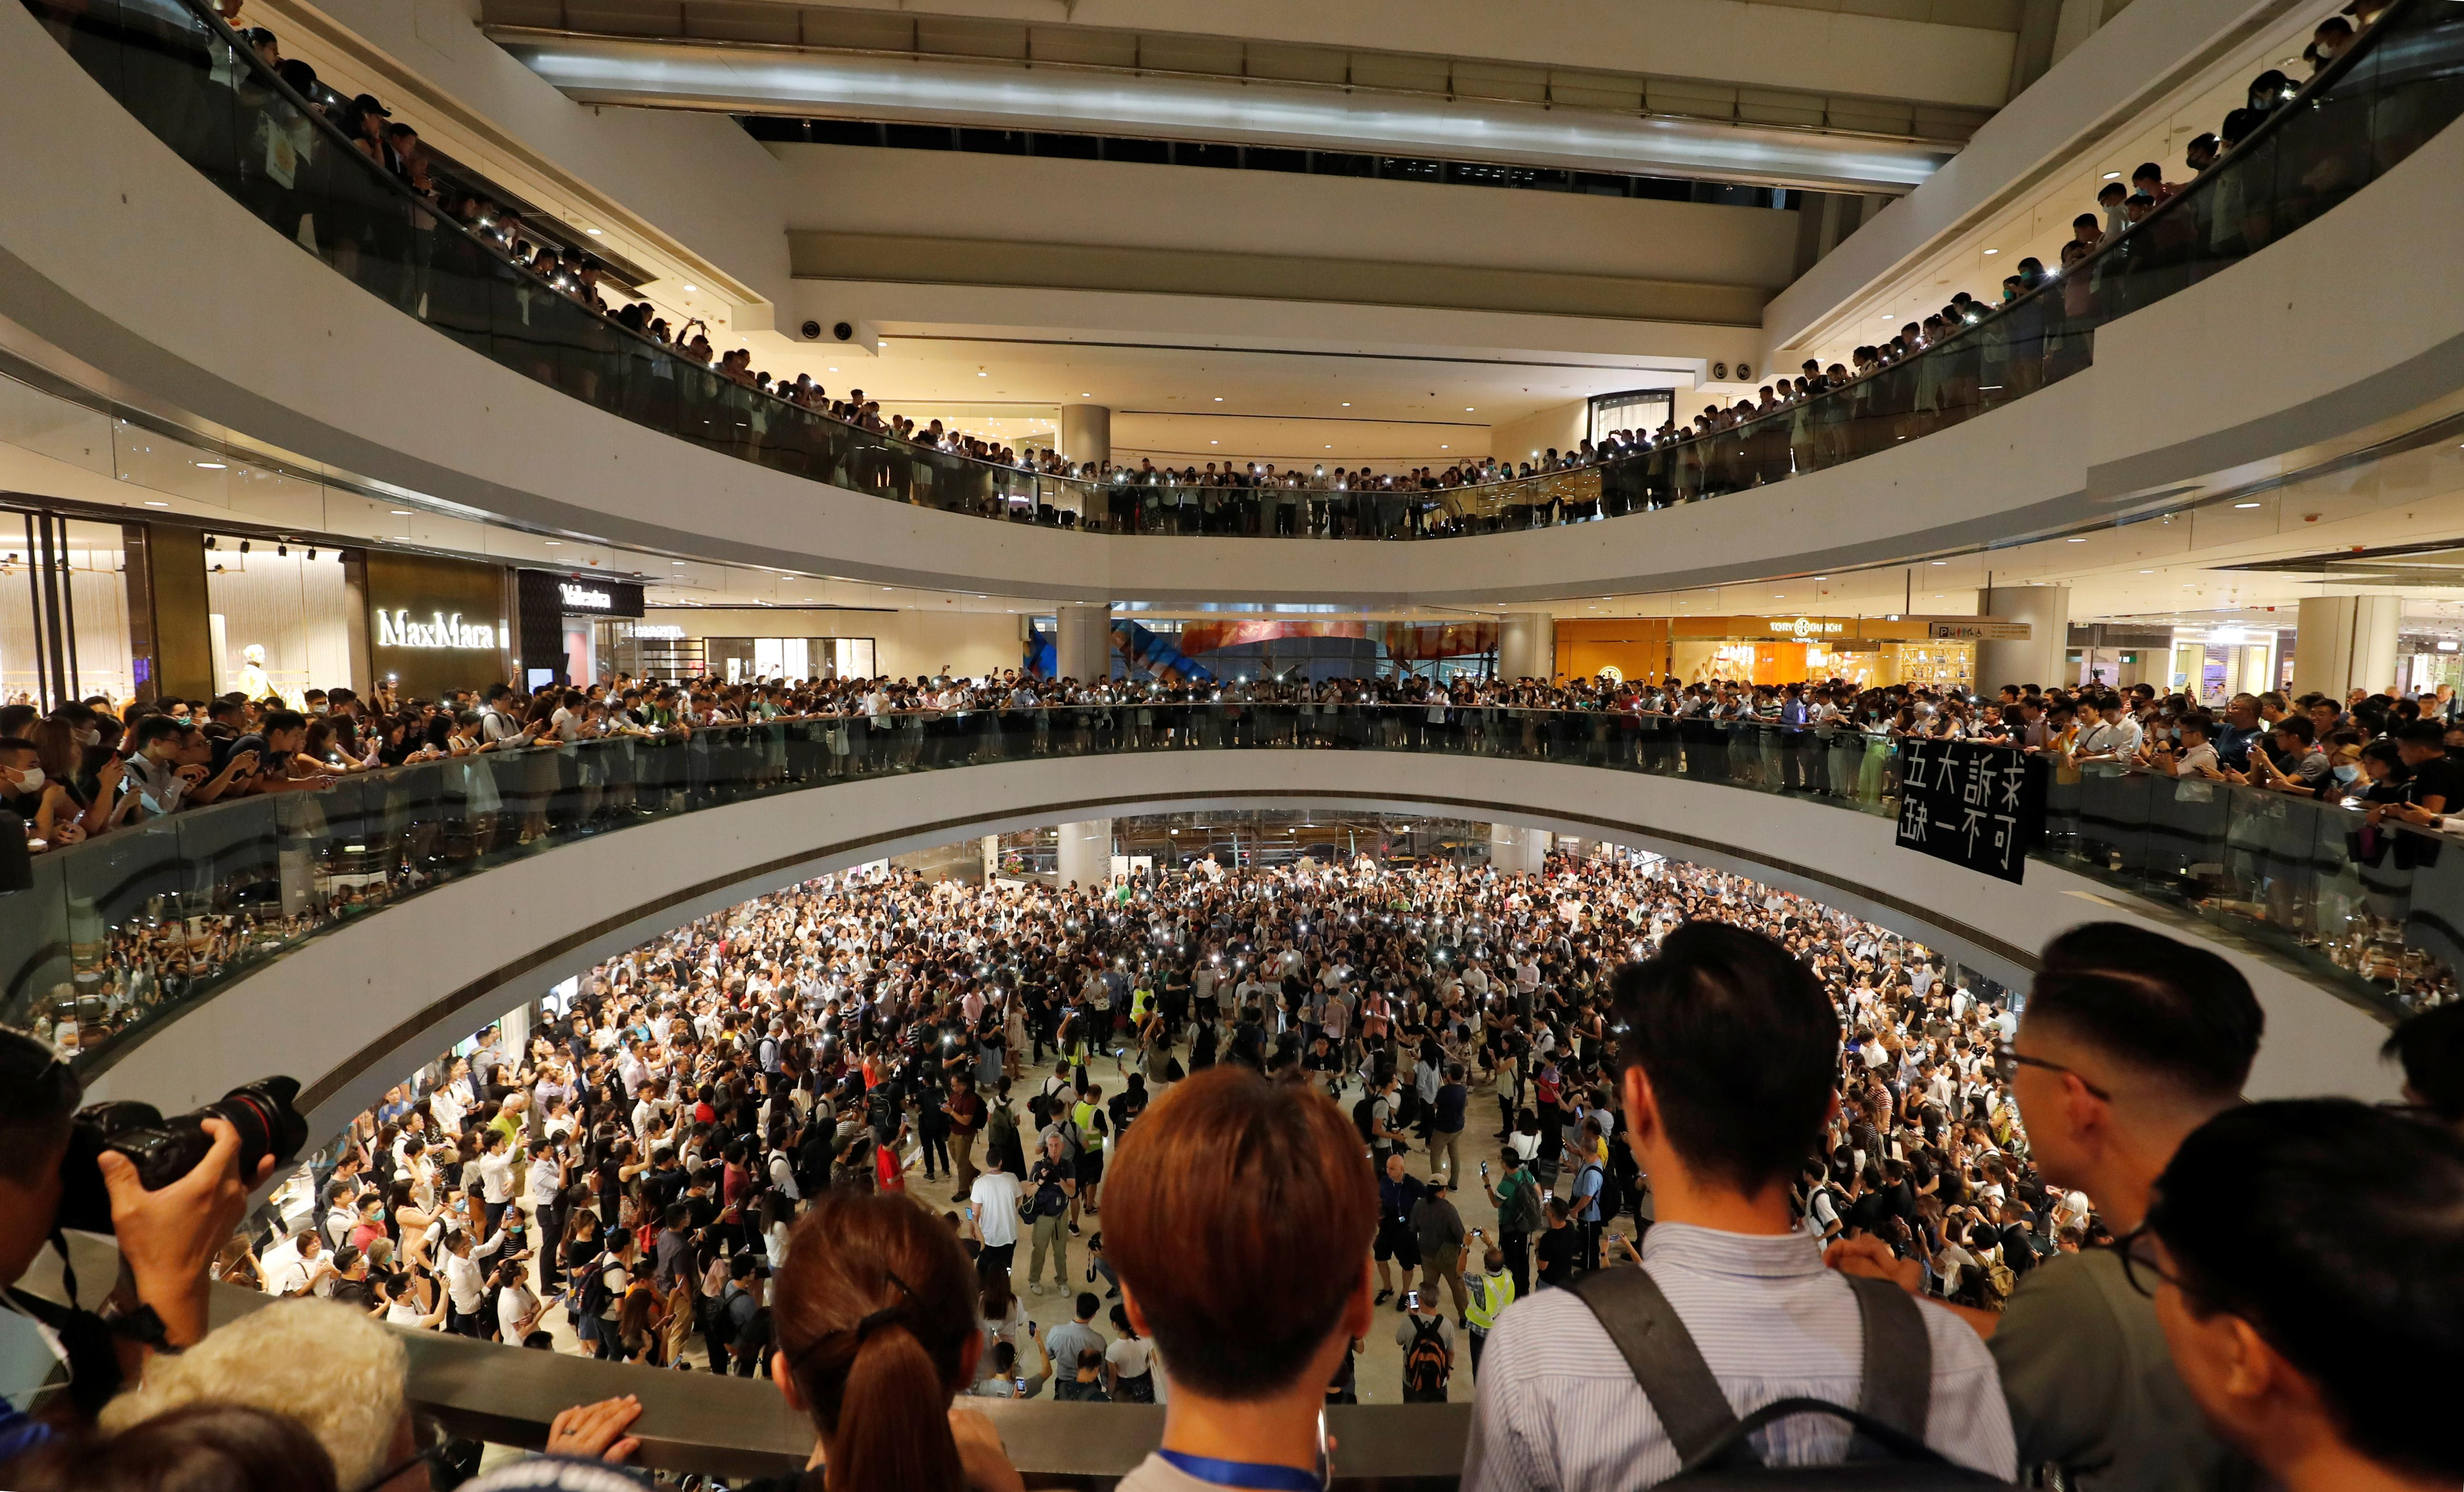 Hong Kong protesters to target metro again in busy lantern festival